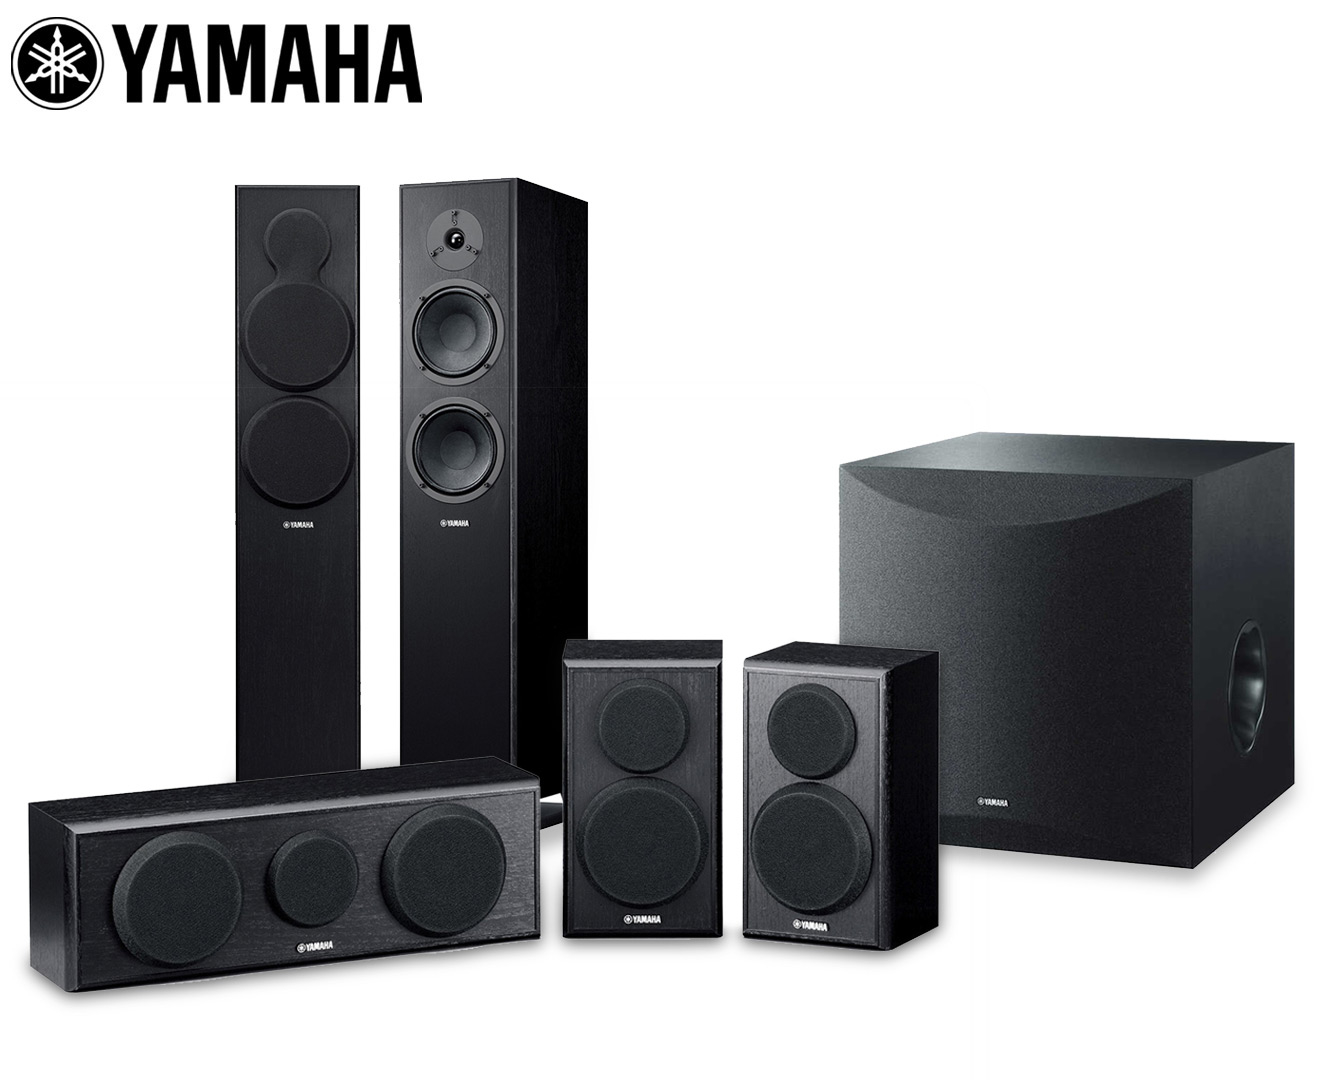 Yamaha 5 1 Channel Tower Speaker Pack Subwoofer Catch